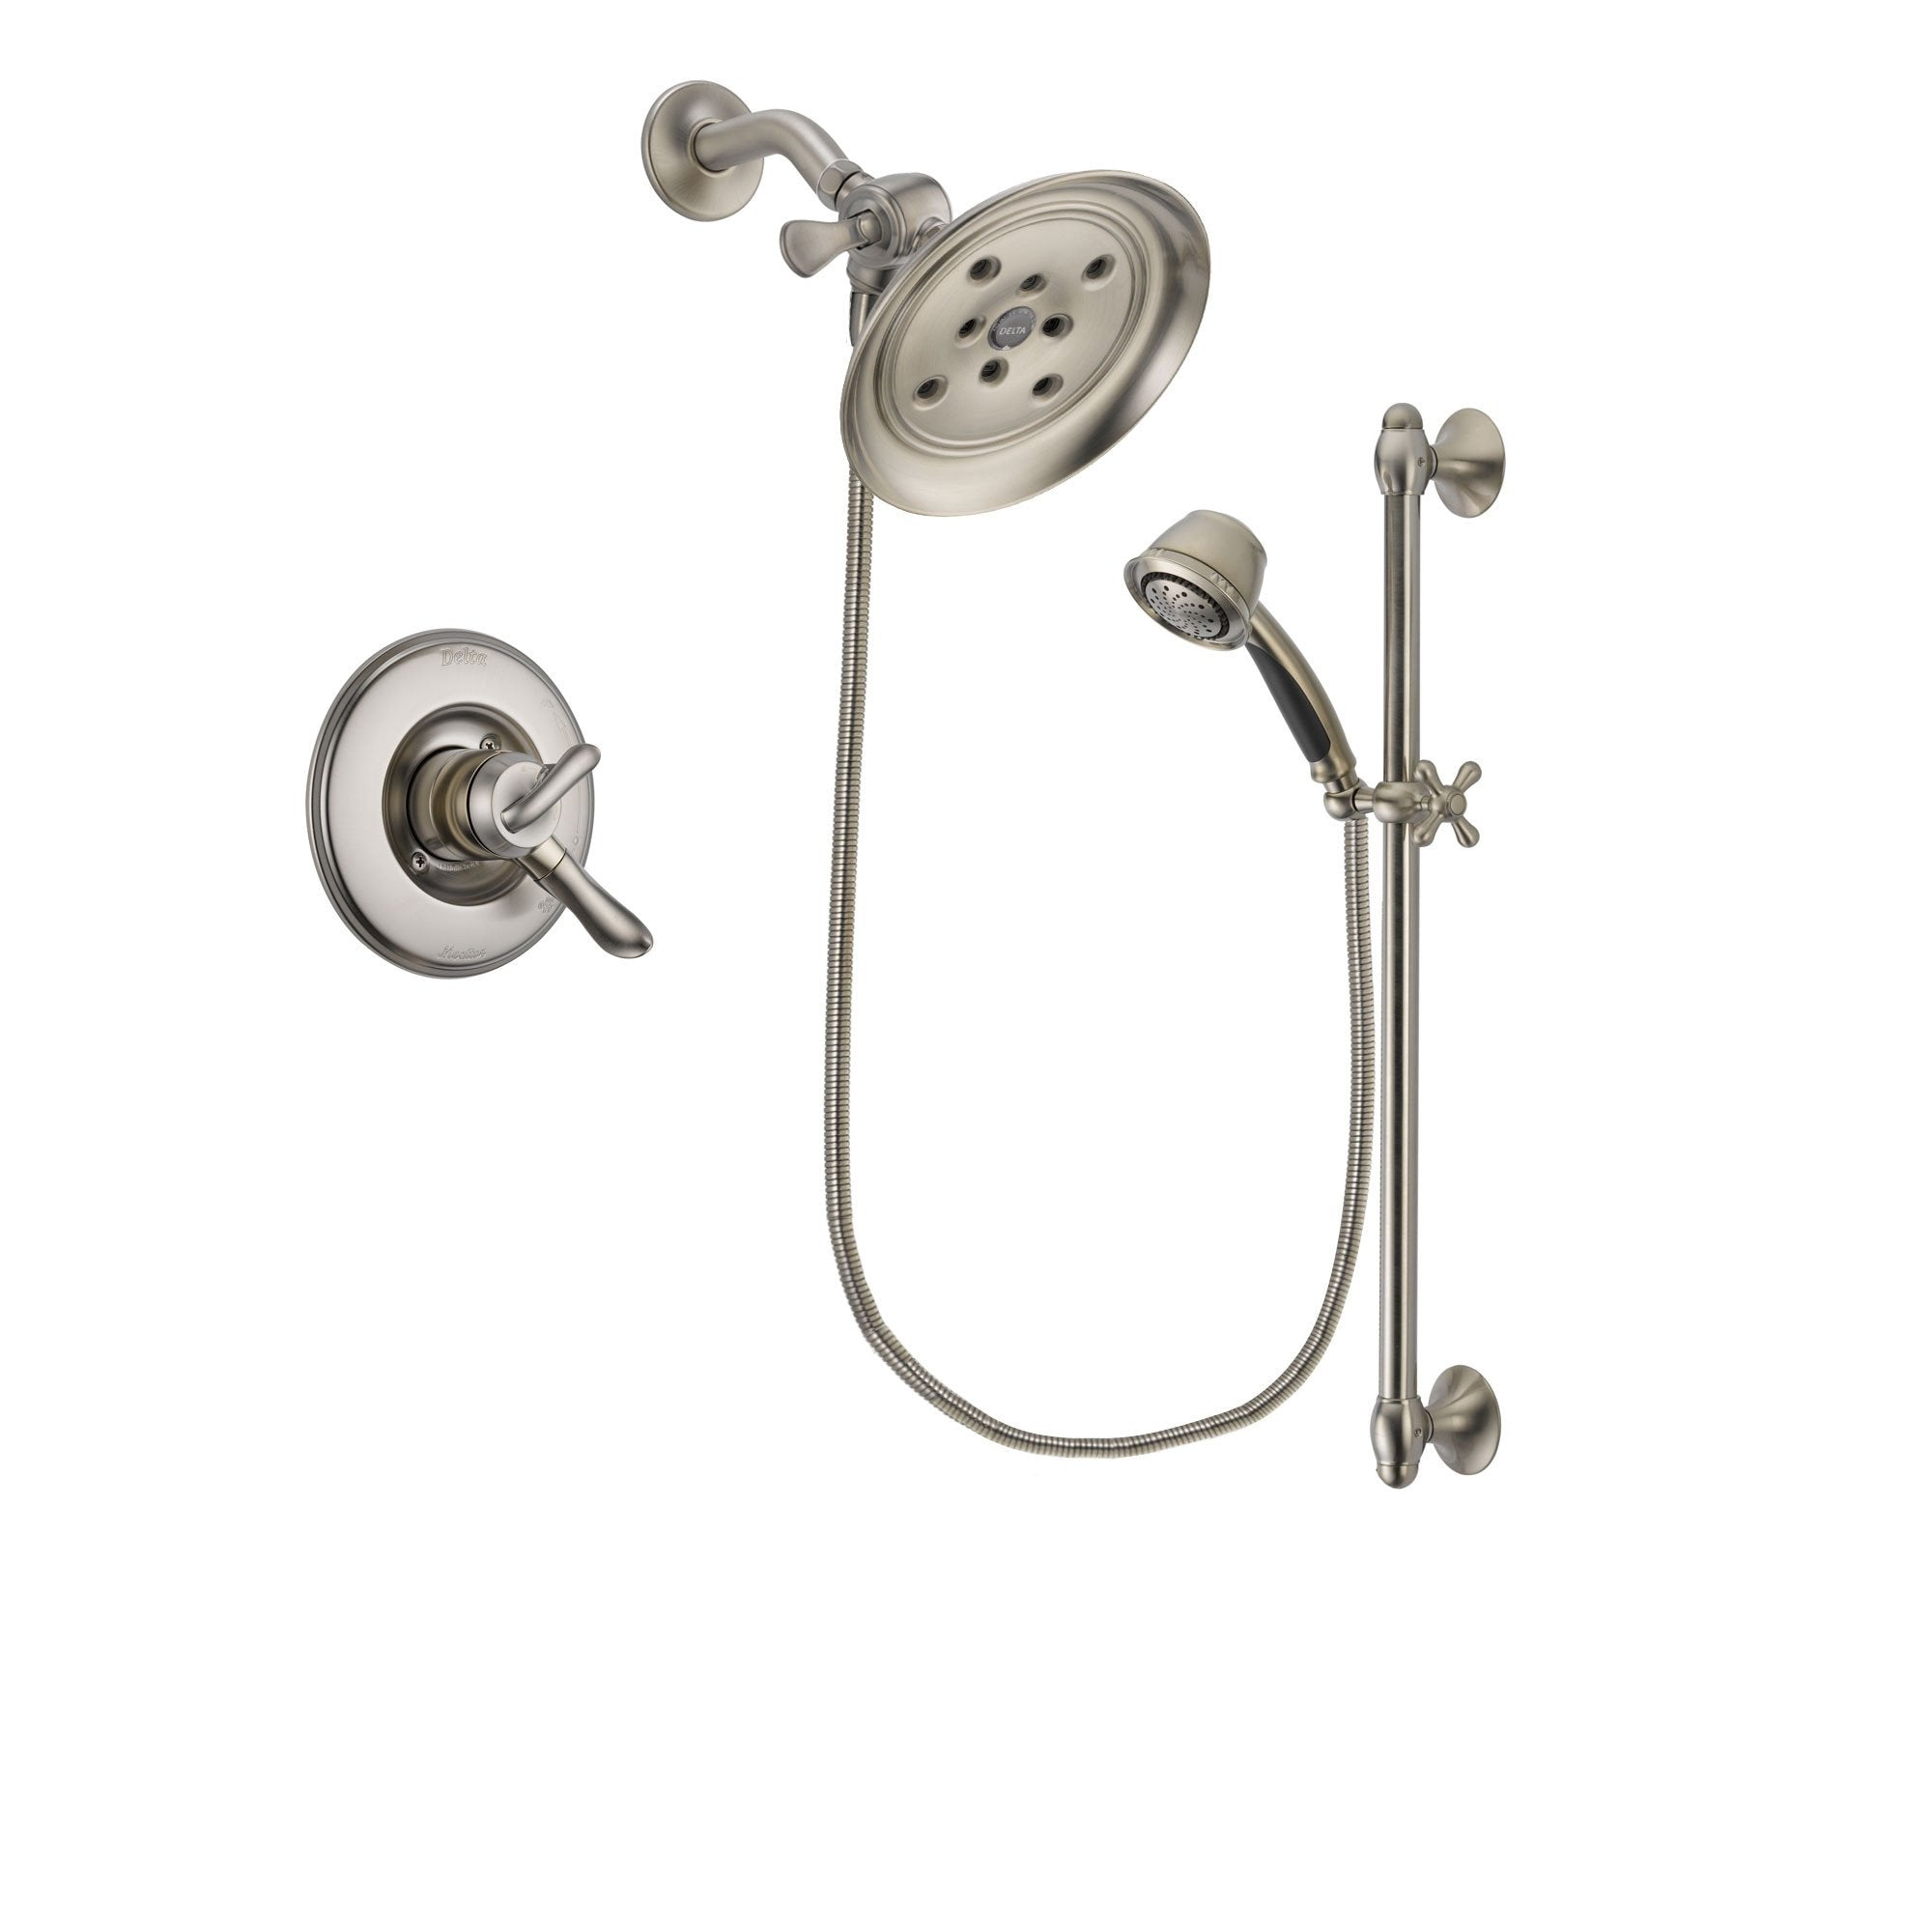 Delta Linden Stainless Steel Finish Shower Faucet System w/ Hand Spray DSP1340V